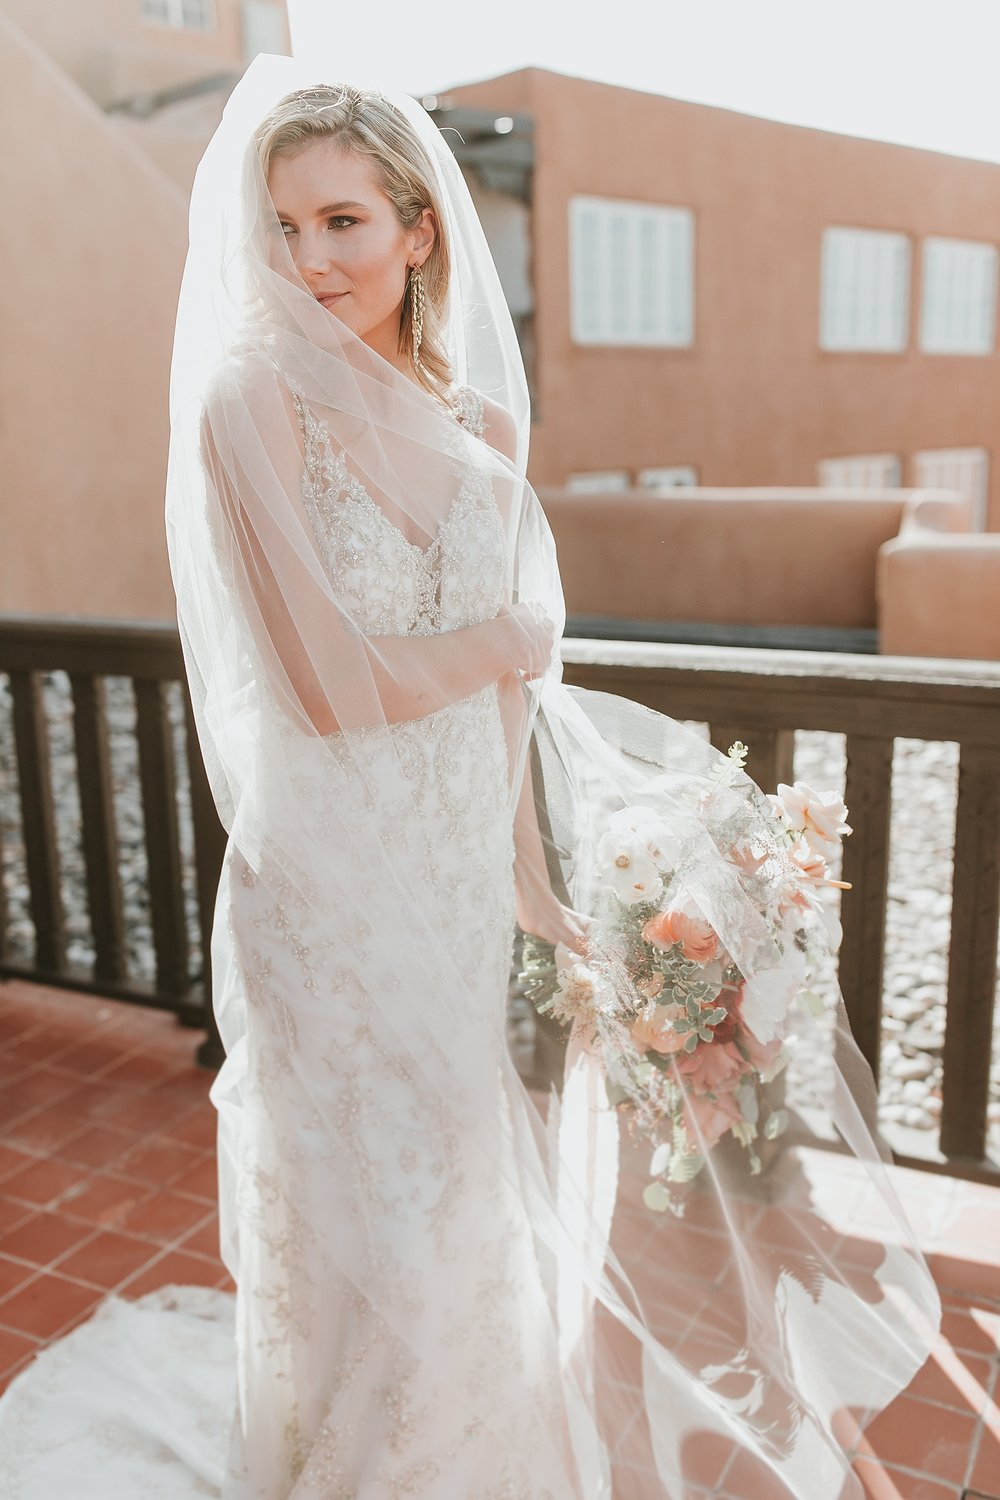 Alicia+lucia+photography+-+albuquerque+wedding+photographer+-+santa+fe+wedding+photography+-+new+mexico+wedding+photographer+-+la+fonda+wedding+-+la+fonda+winter+wedding_0030.jpg